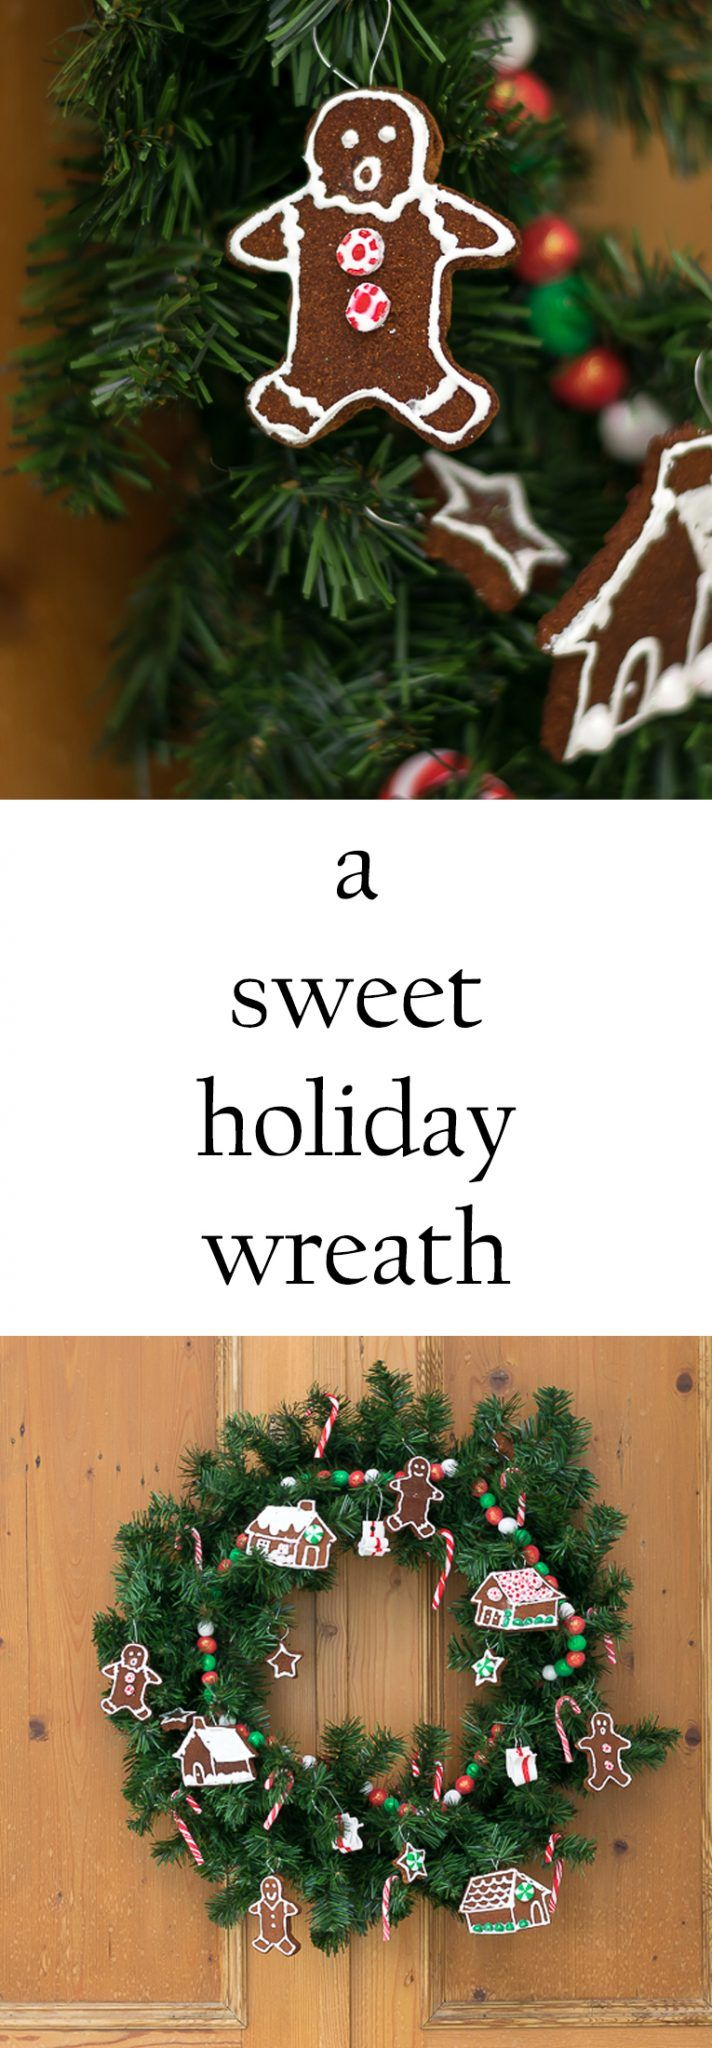 pin-gingerbread-wreath